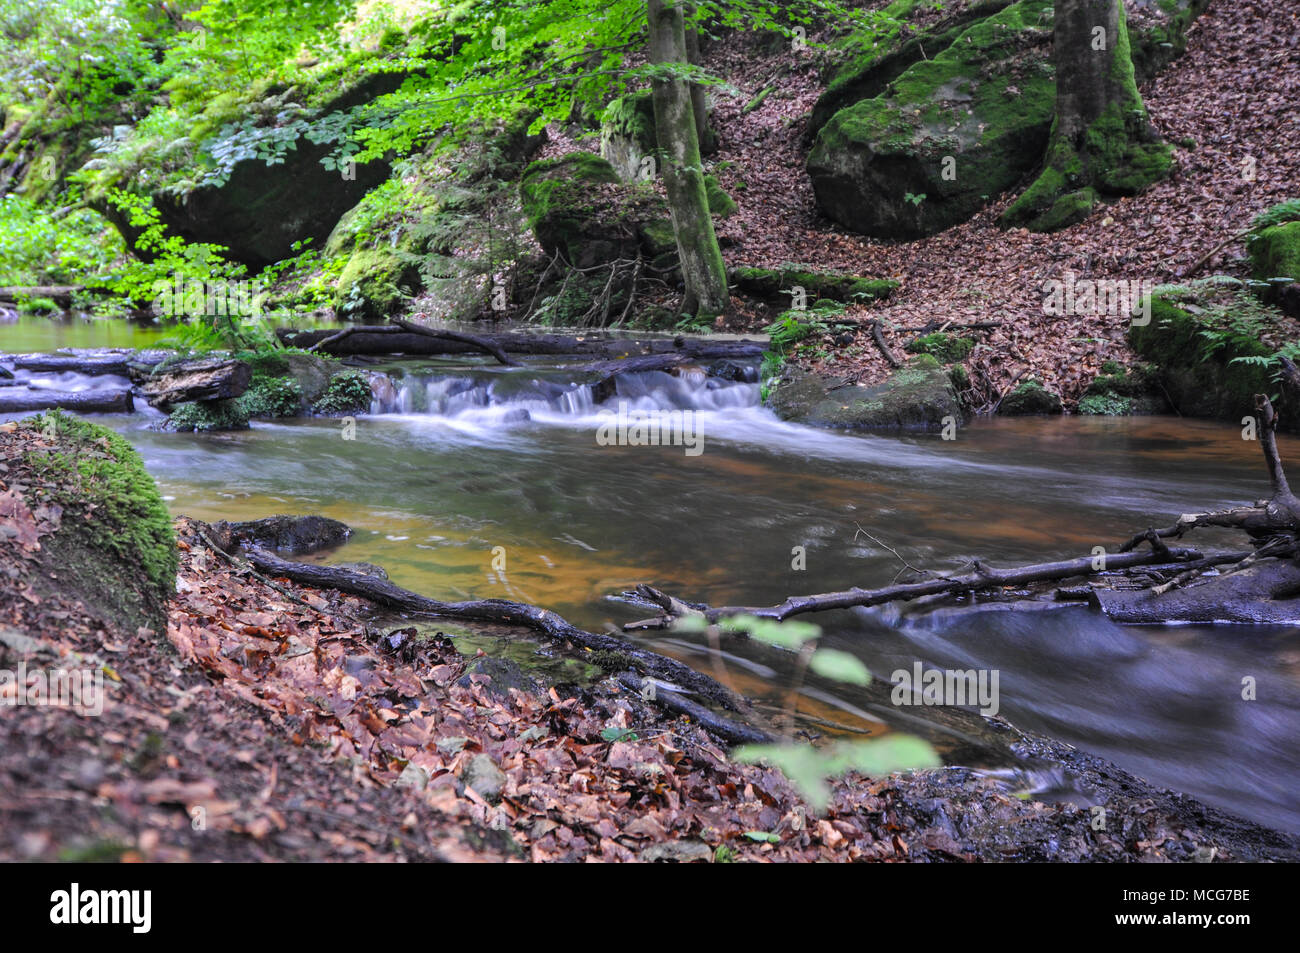 German Beech forest at Pfalz or Black Forest close to Kaiserslautern - Stock Image